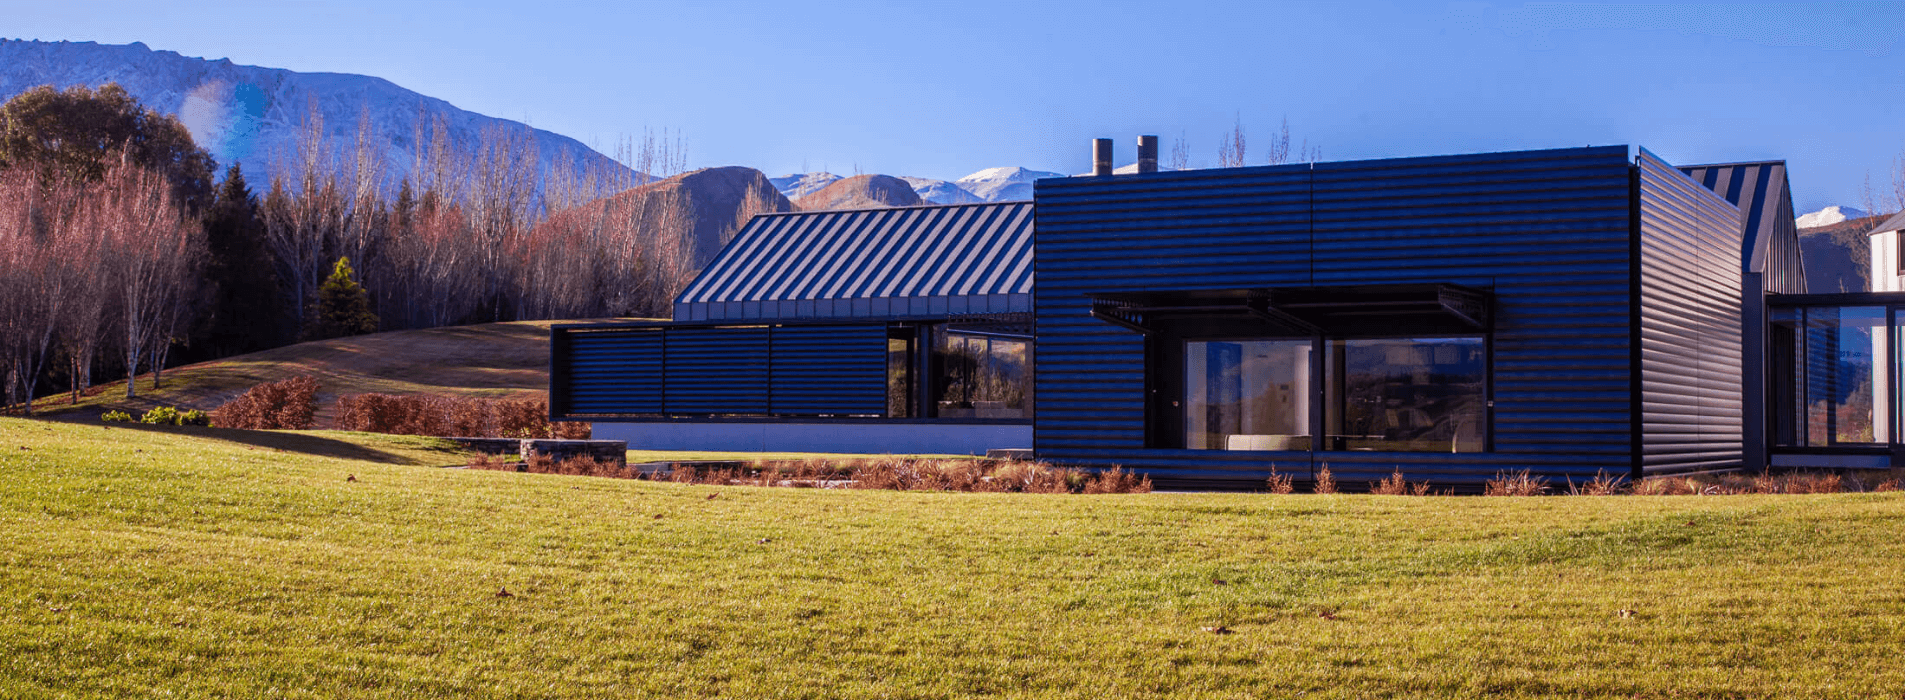 Aurae project - Arrowtown residence